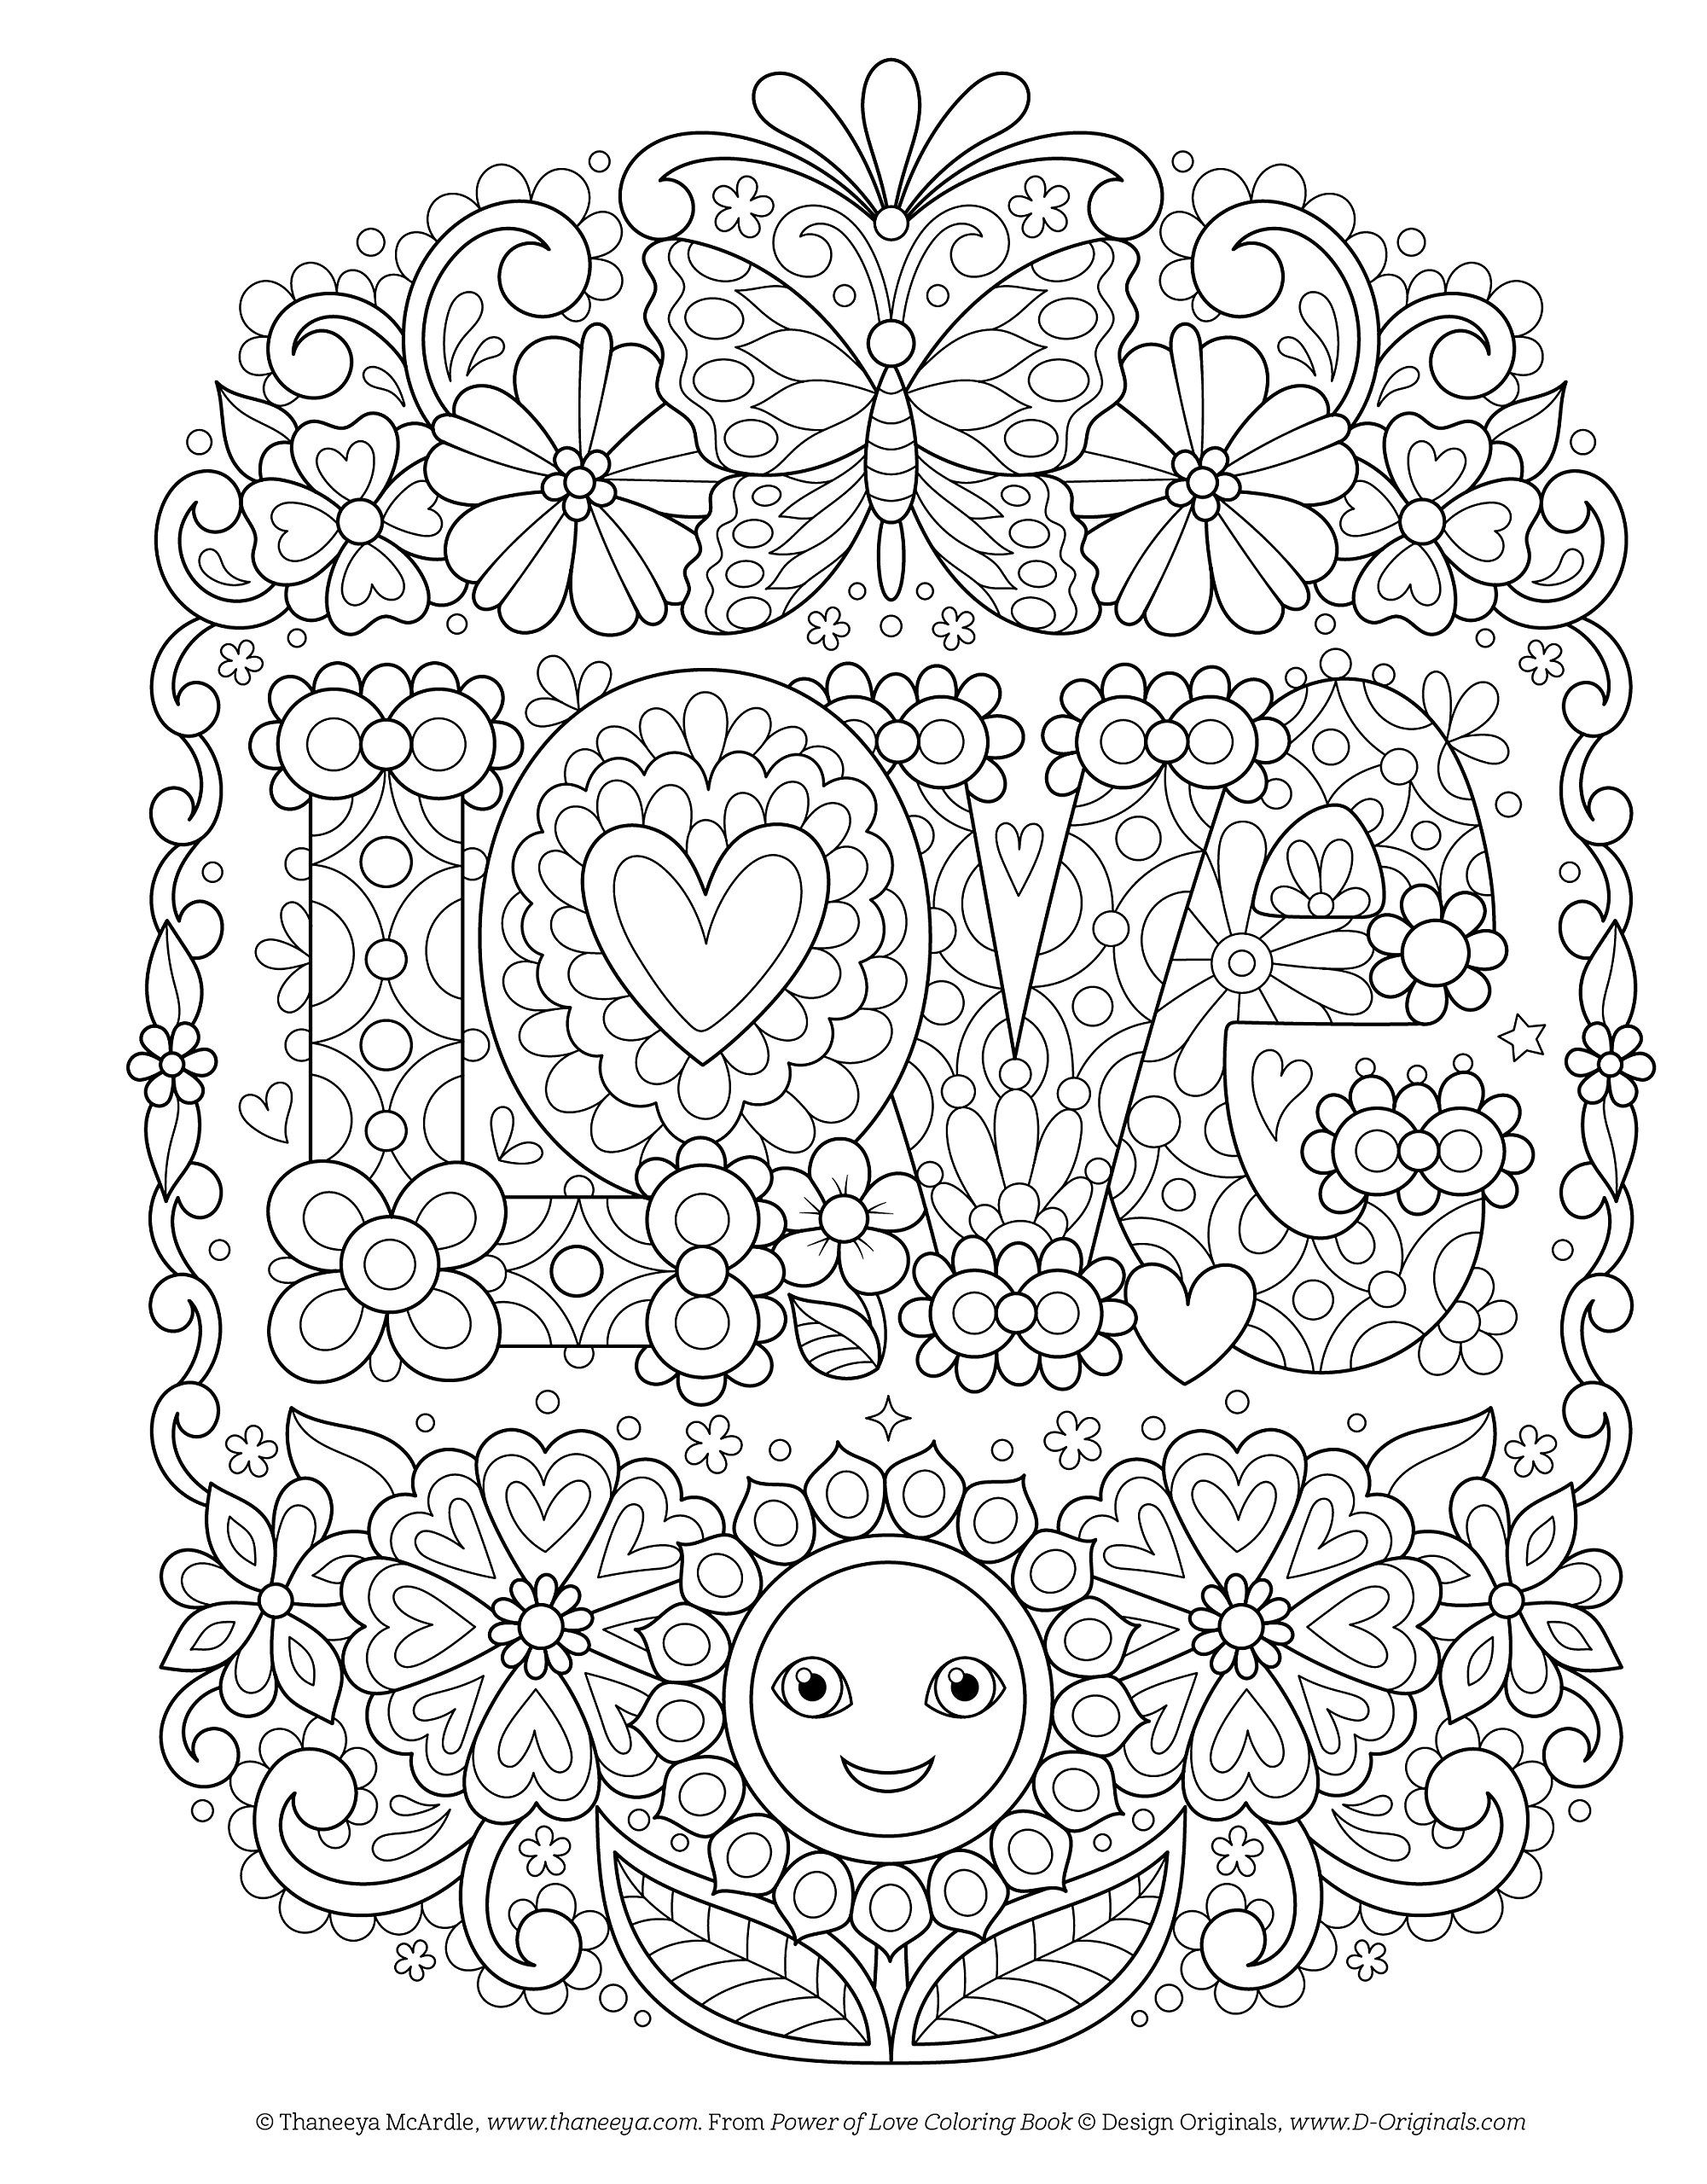 Amazon Com Power Of Love Coloring Book Coloring Is Fun 9781497203204 Thaneeya Mcardle Books Love Coloring Pages Coloring Books Coloring Pages